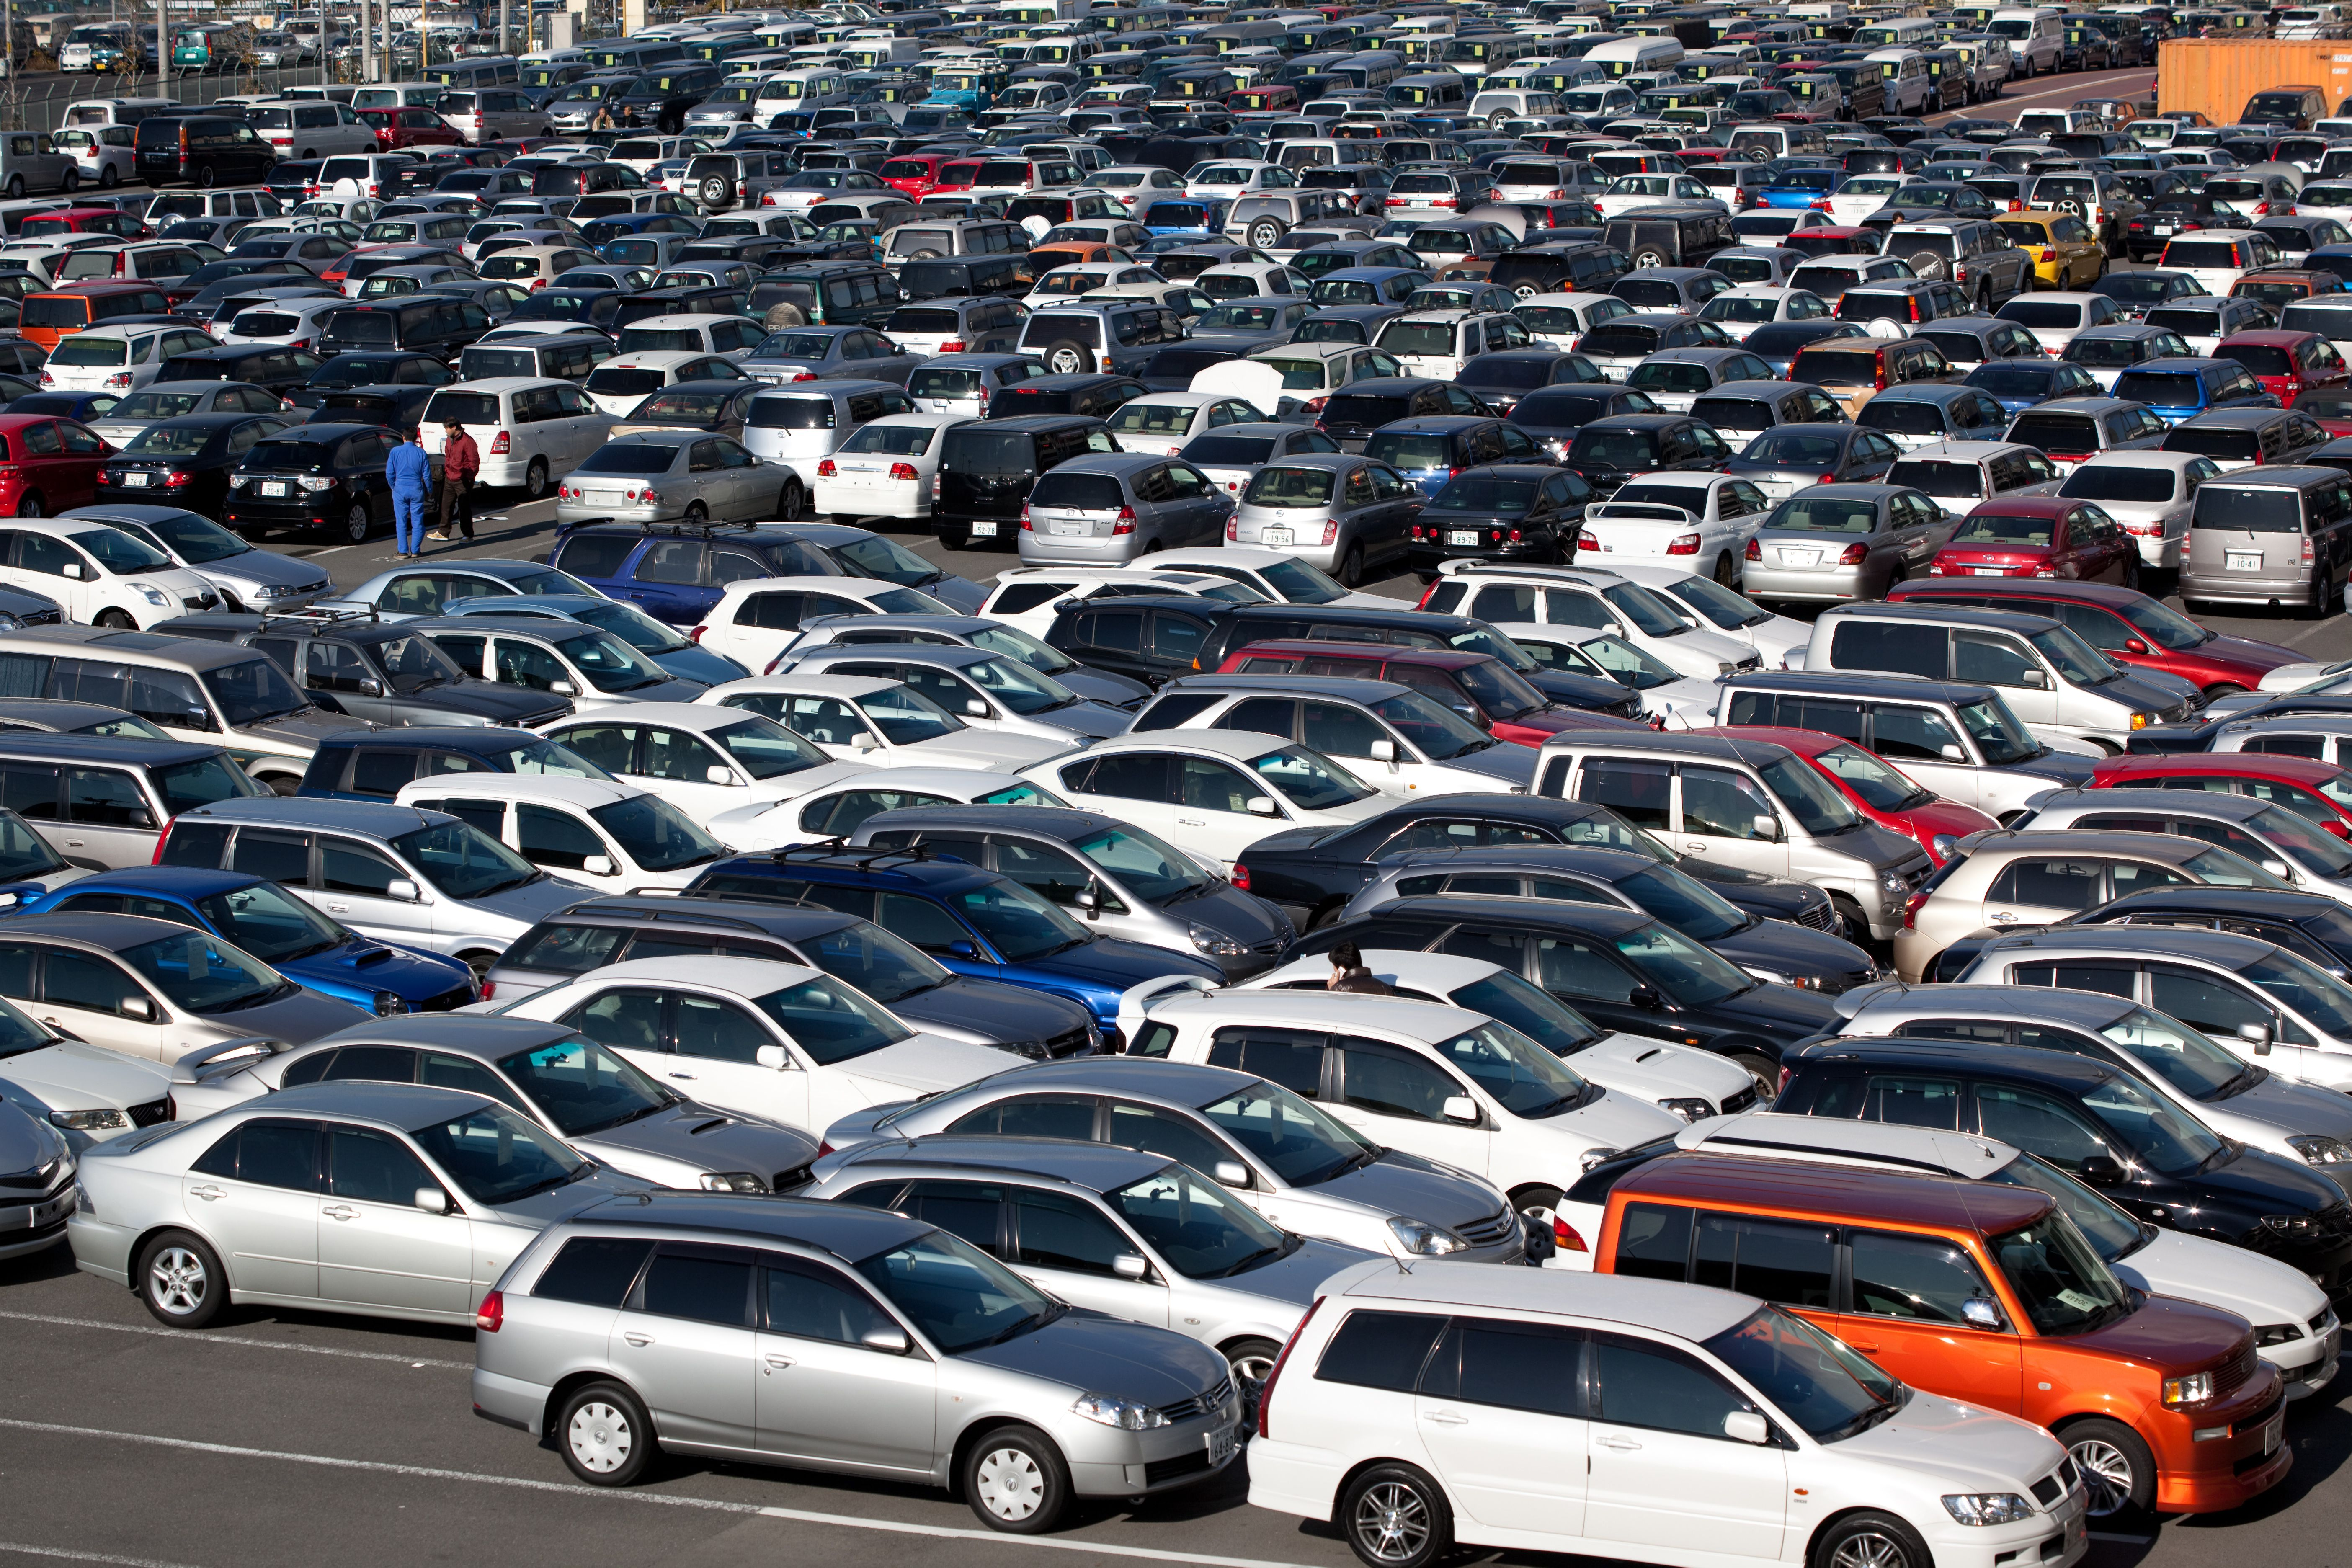 Guide To Removing Car Odors And Stains Salvage Cars Car Auctions Buy Used Cars